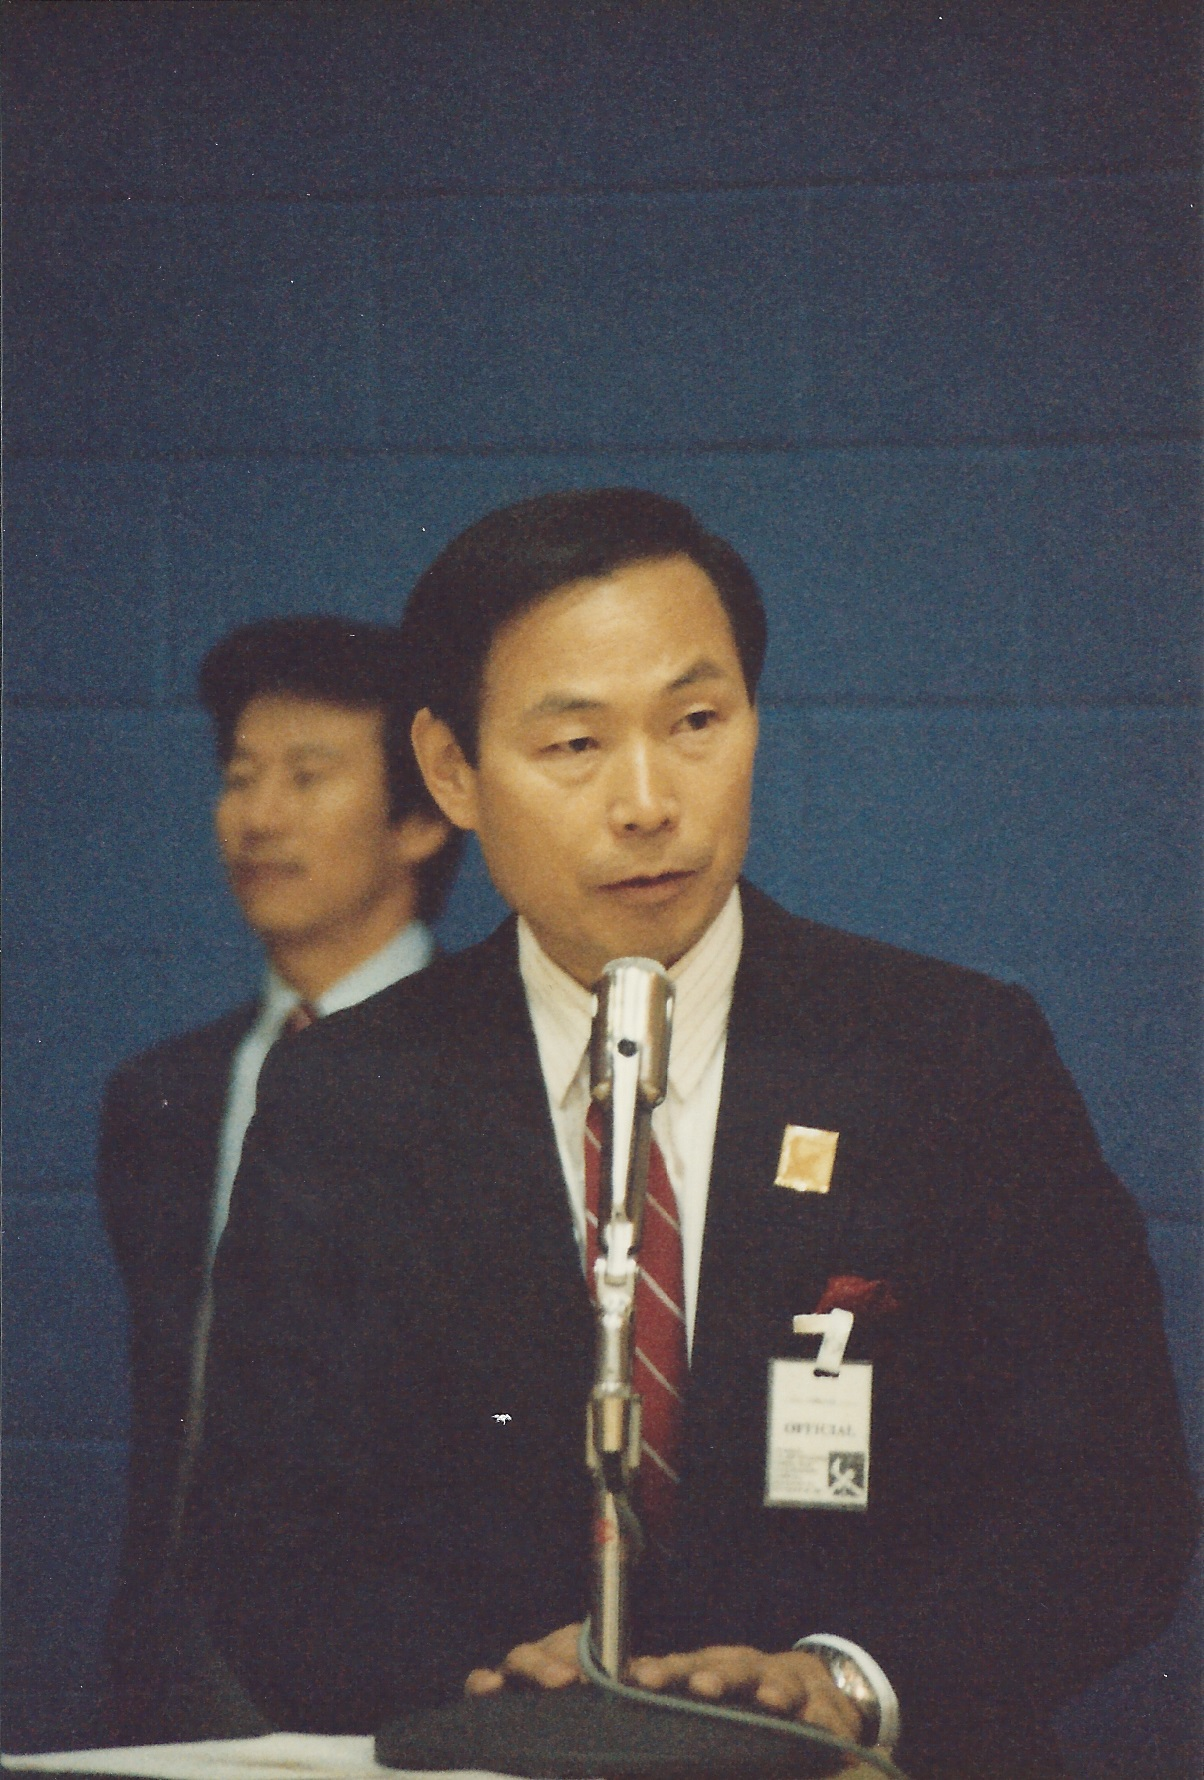 0157 Central Connecticut State University Tournament - Tournament Chairman Moo Yong Lee 1987-09-26.jpg